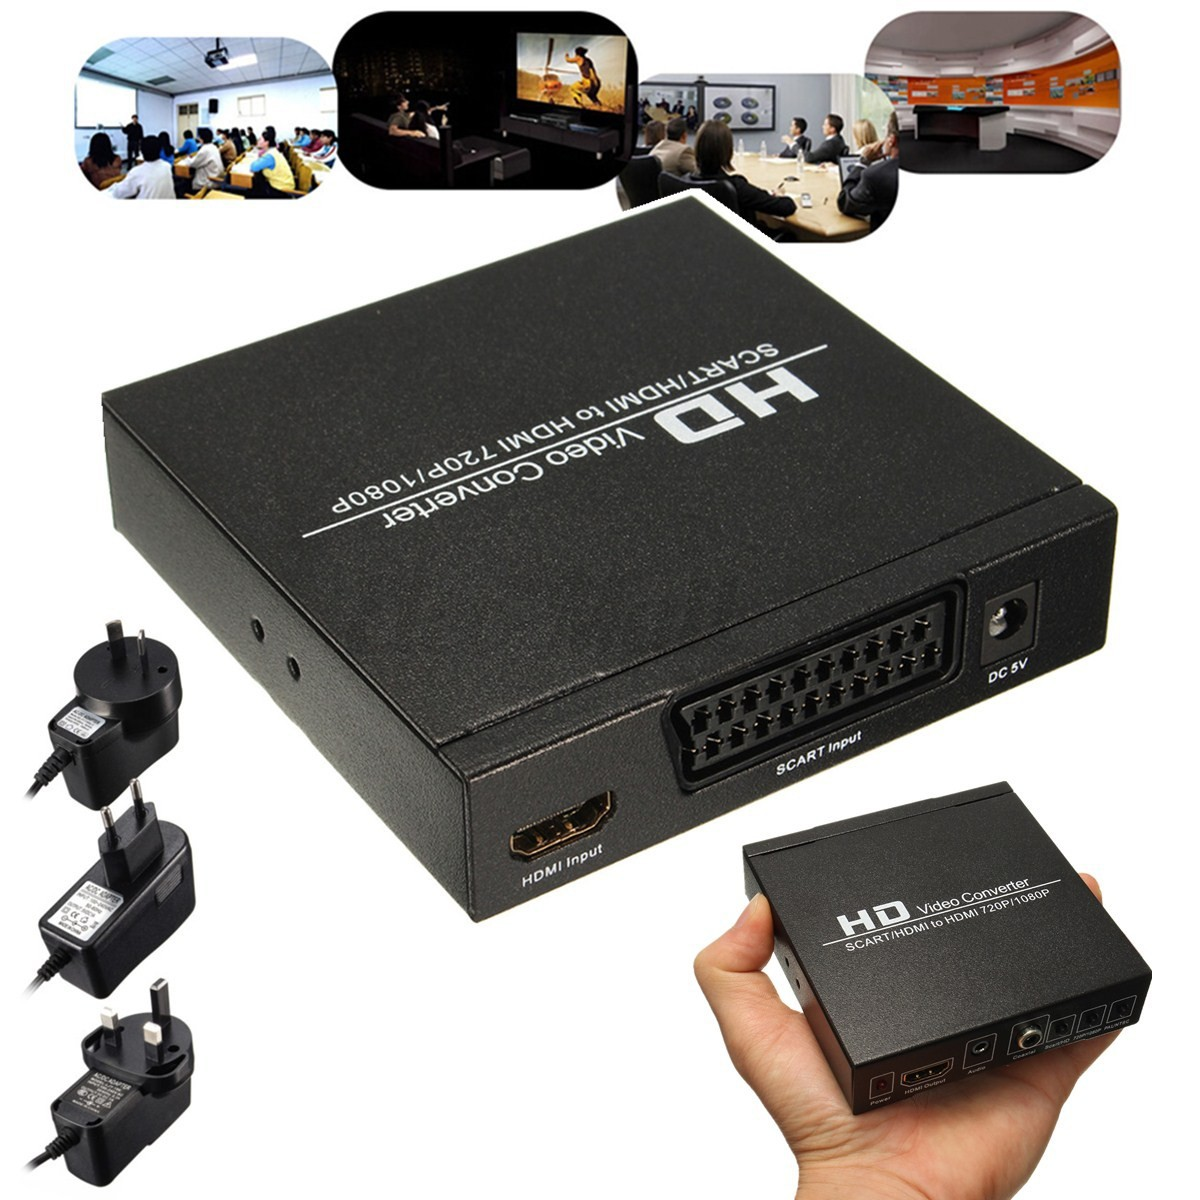 scart hdmi to hdmi 720p 1080p hd video converter adapter monitor box for dvd stb ebay. Black Bedroom Furniture Sets. Home Design Ideas